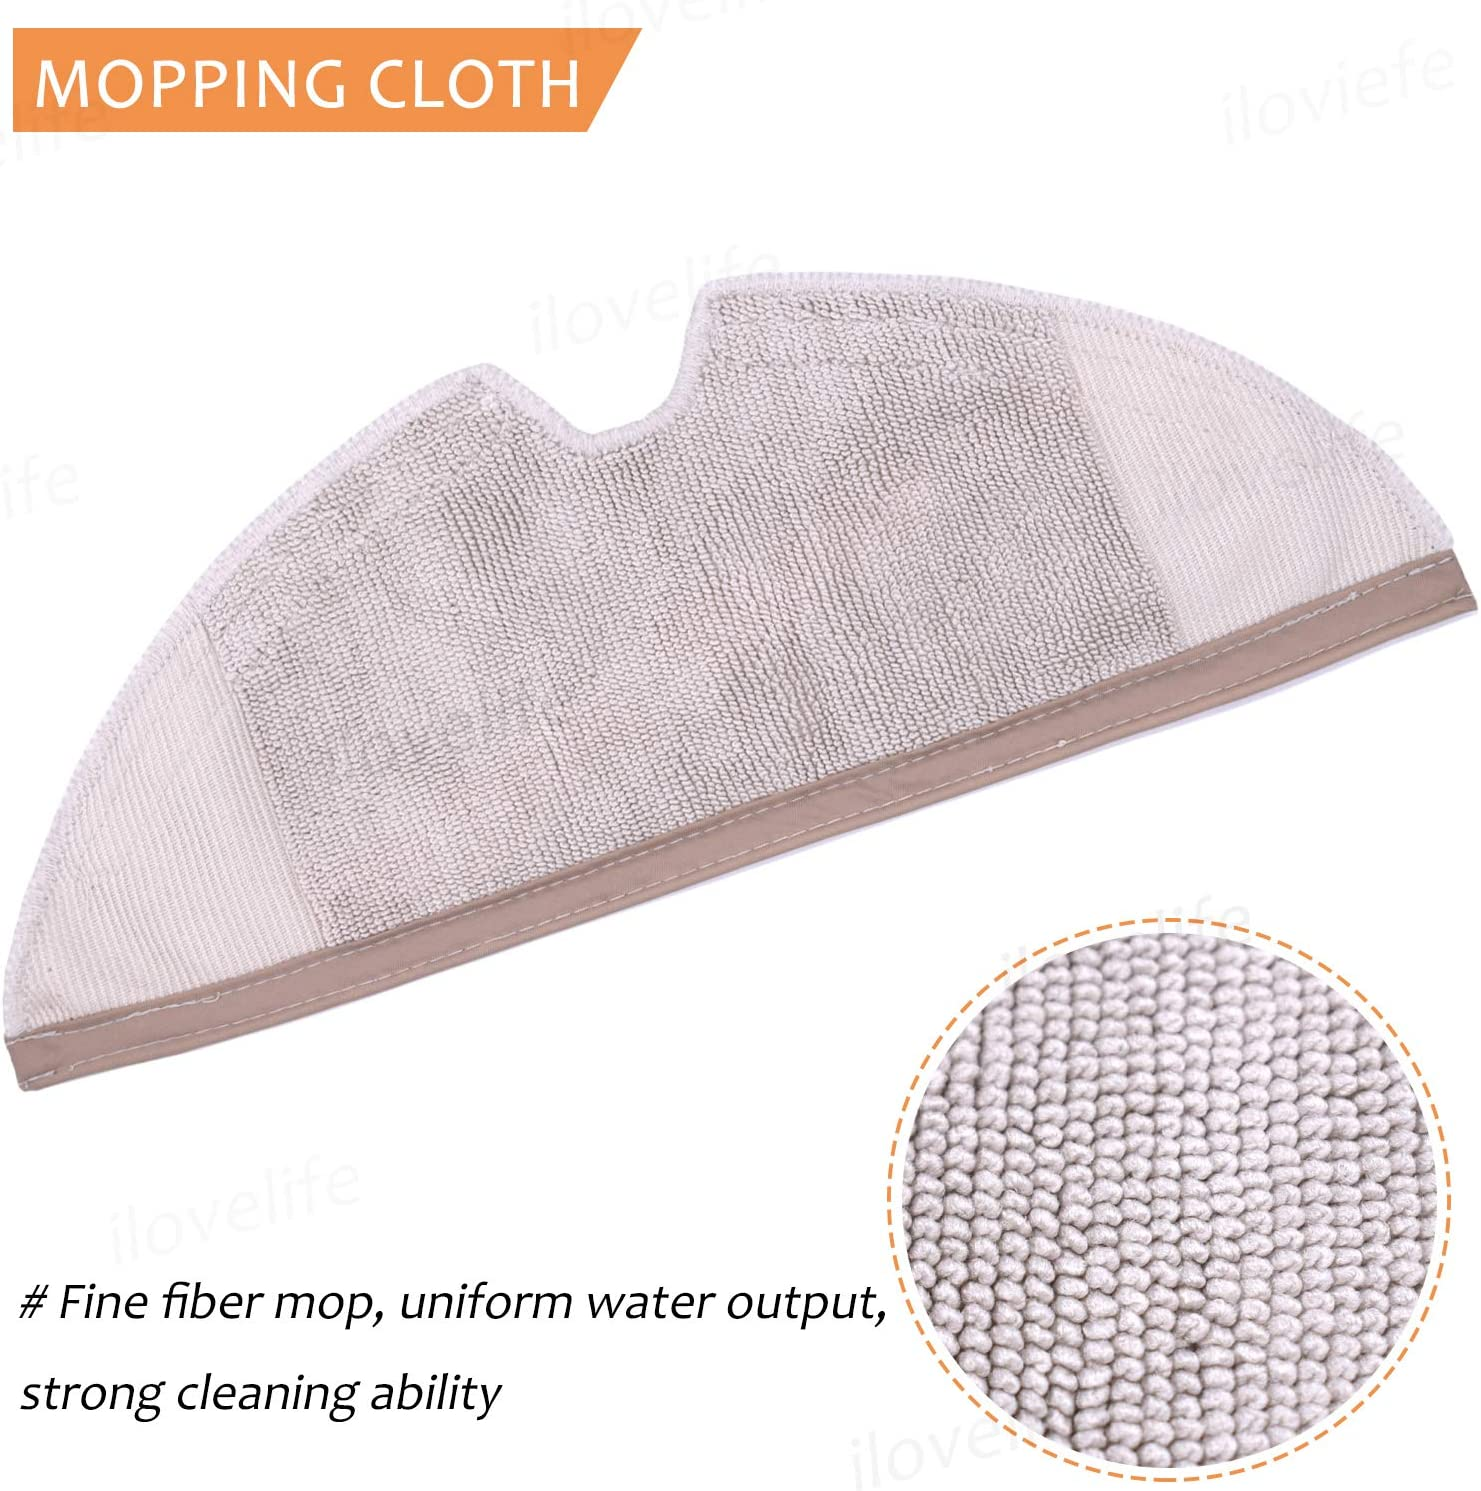 Nrpfell 10Pcs Suitable for Robot S50 S51 Vacuum Cleaner Spare Parts Kit Mop Cloths Generation 2 Dry Wet Mopping Cleaning